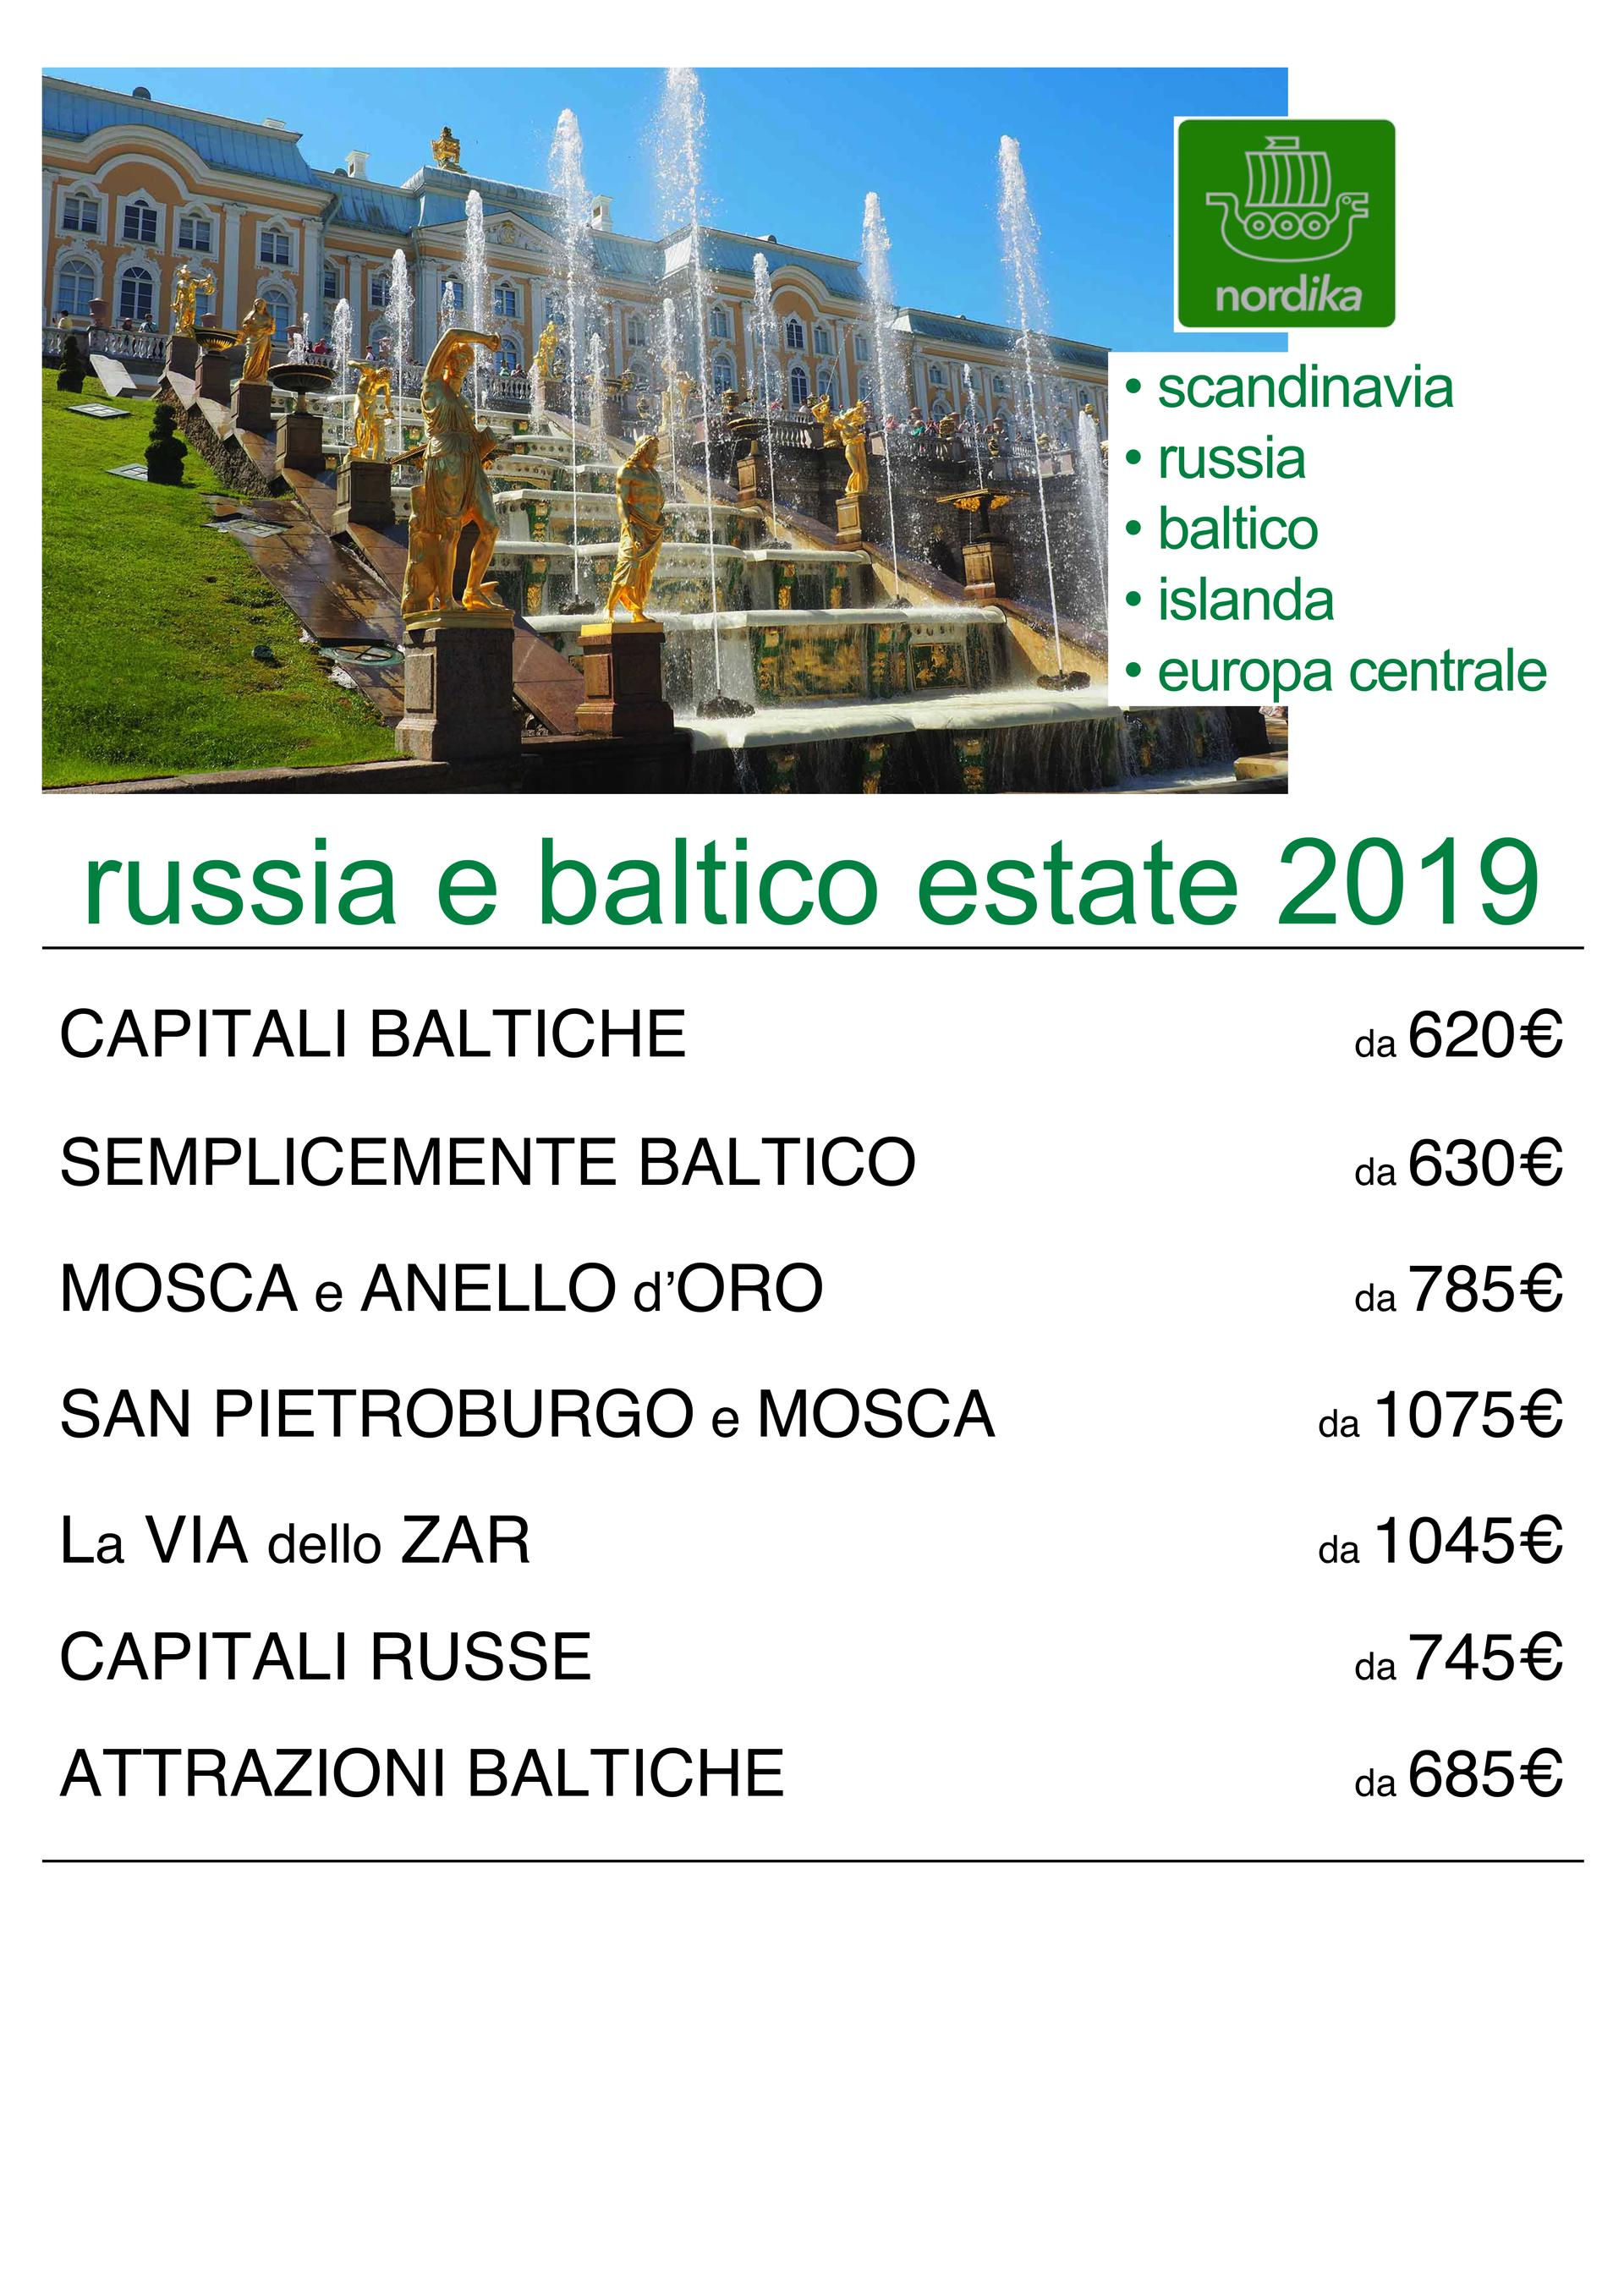 RUSSIA E BALTICO ESTATE 2019